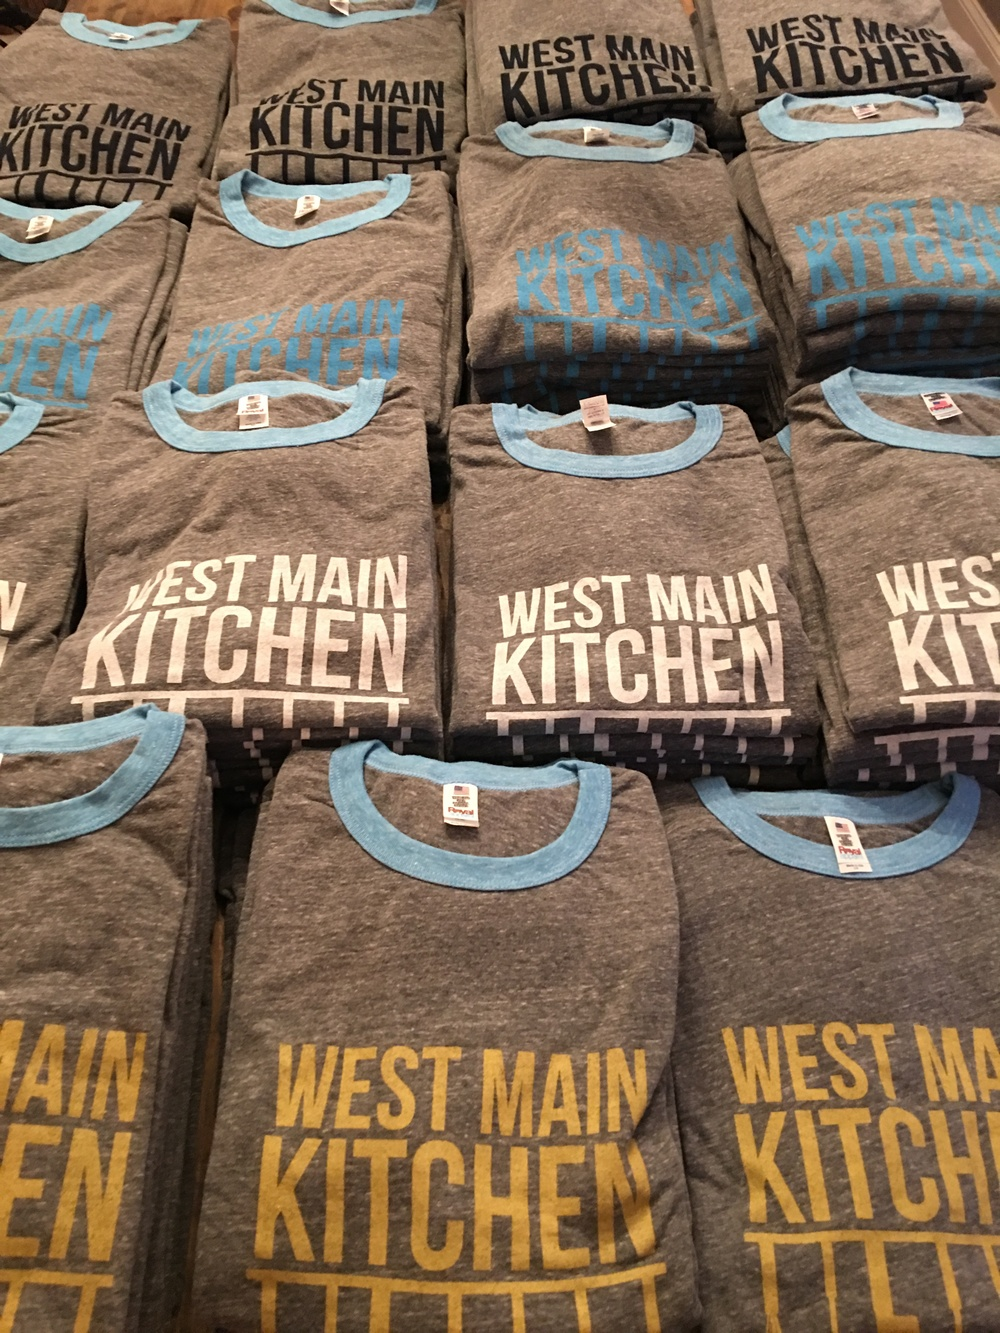 West Main Kitchen